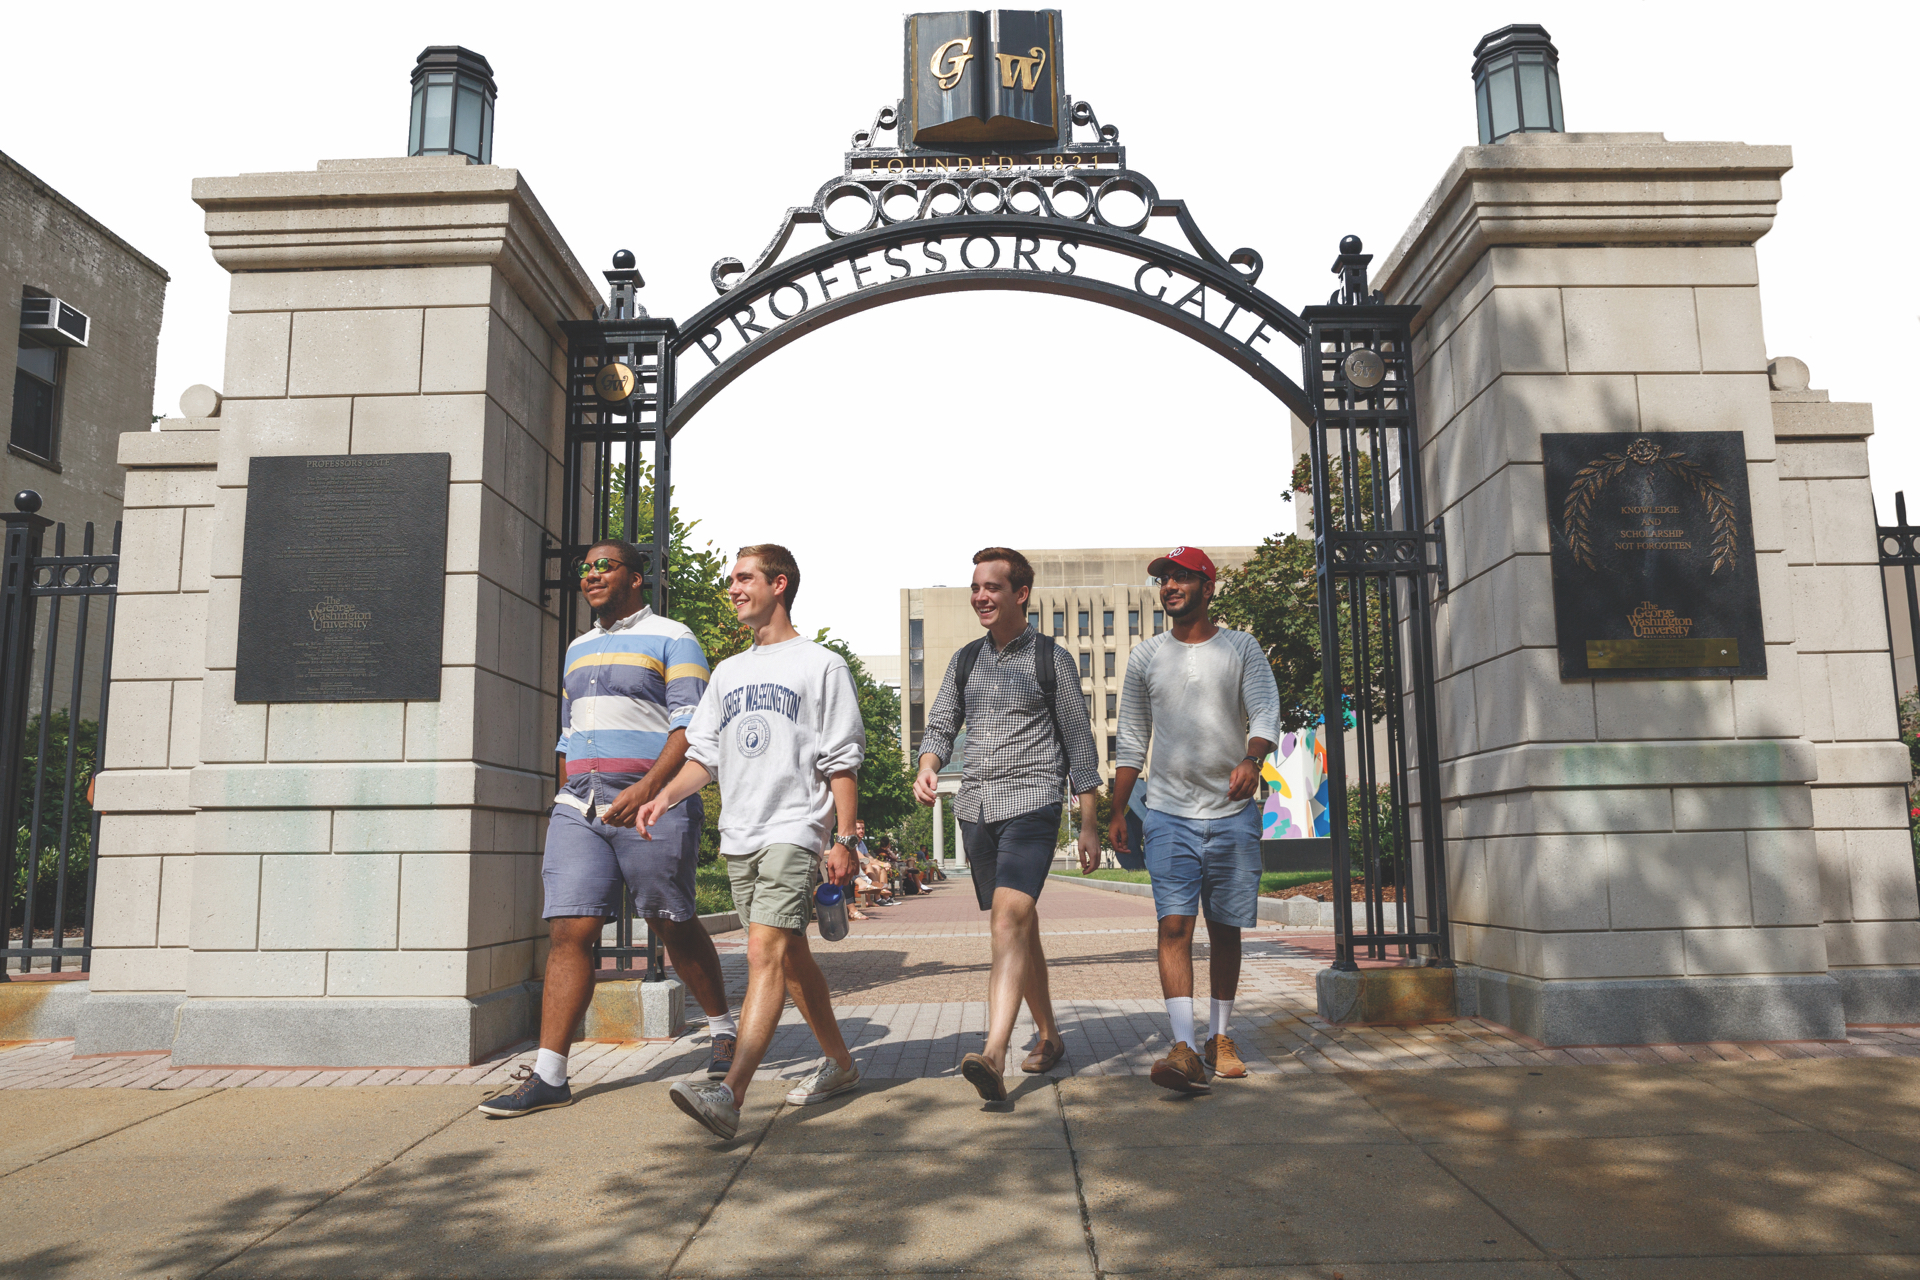 Four GW students walking under a GW gate